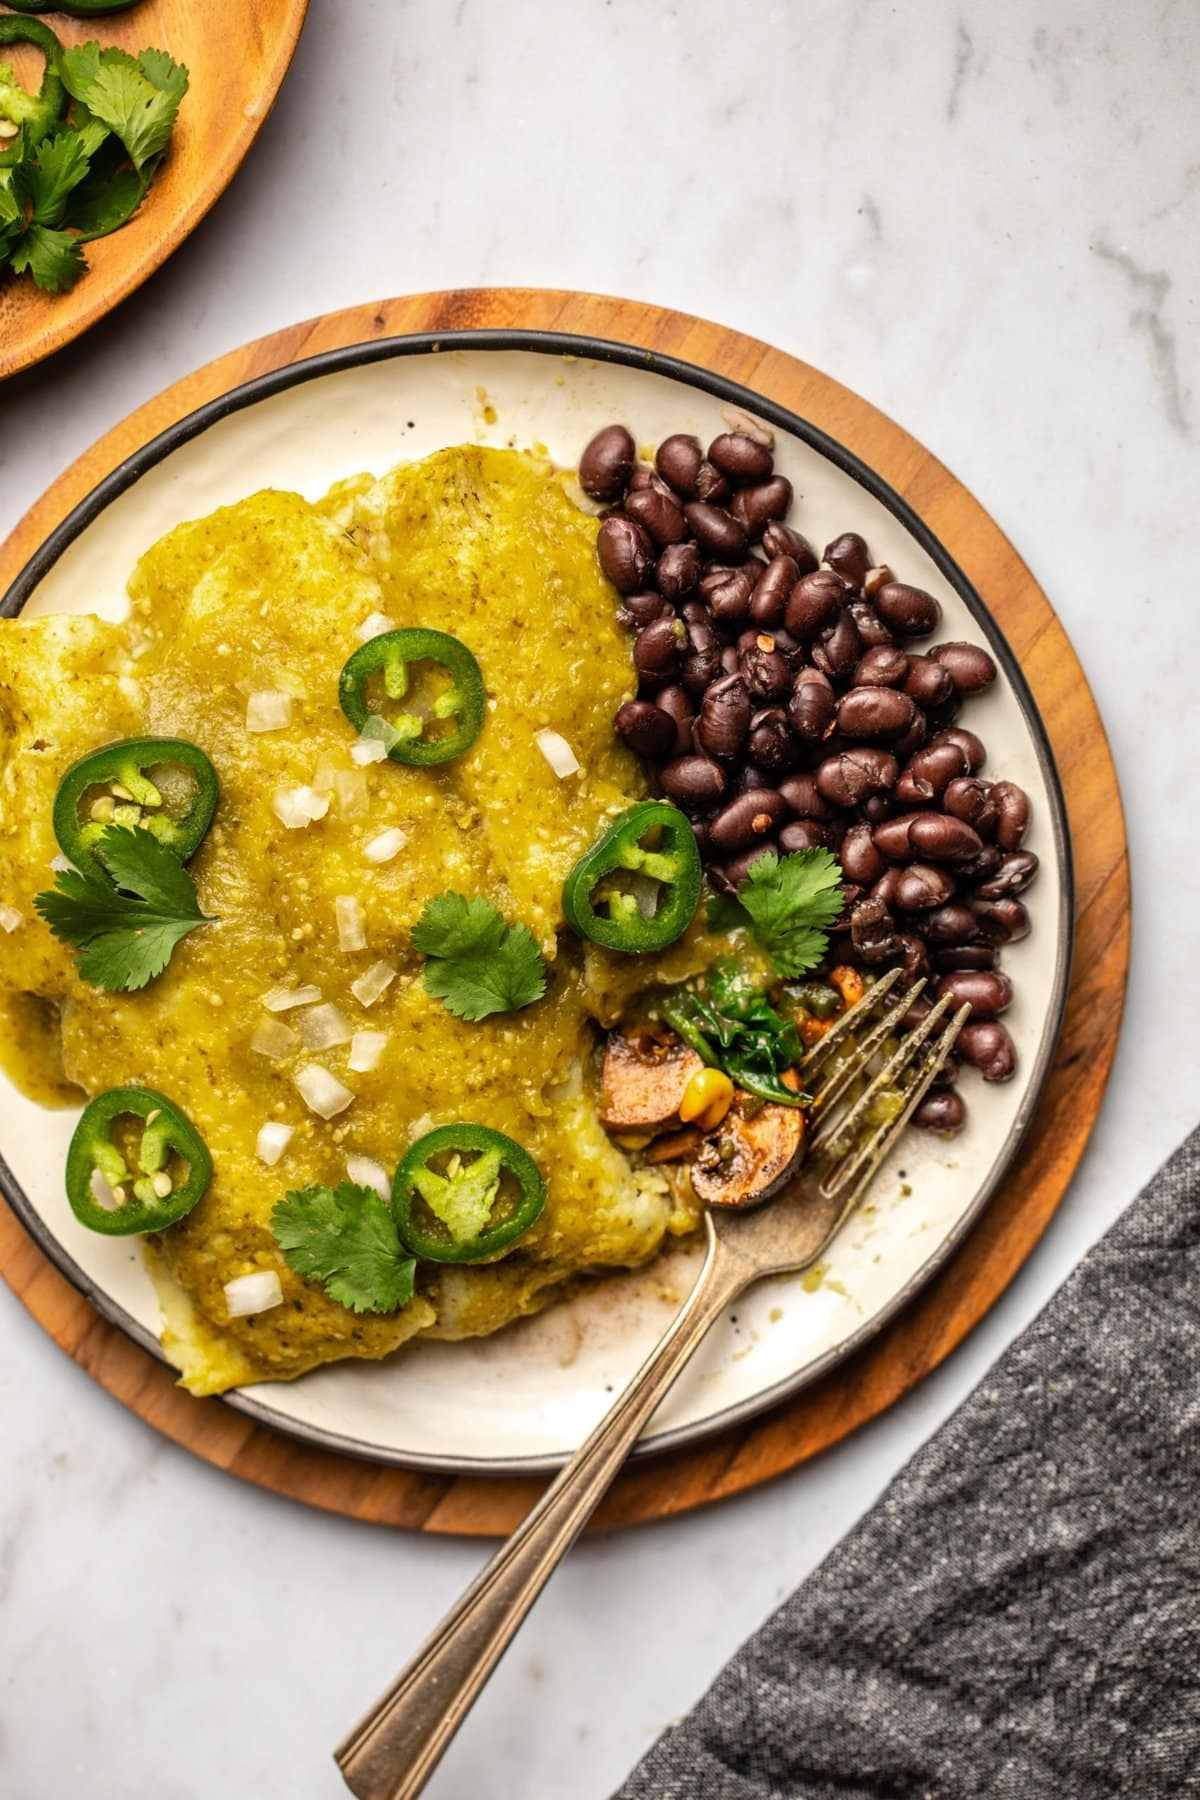 spinach and mushroom enchiladas with salsa verde and black beans on plate